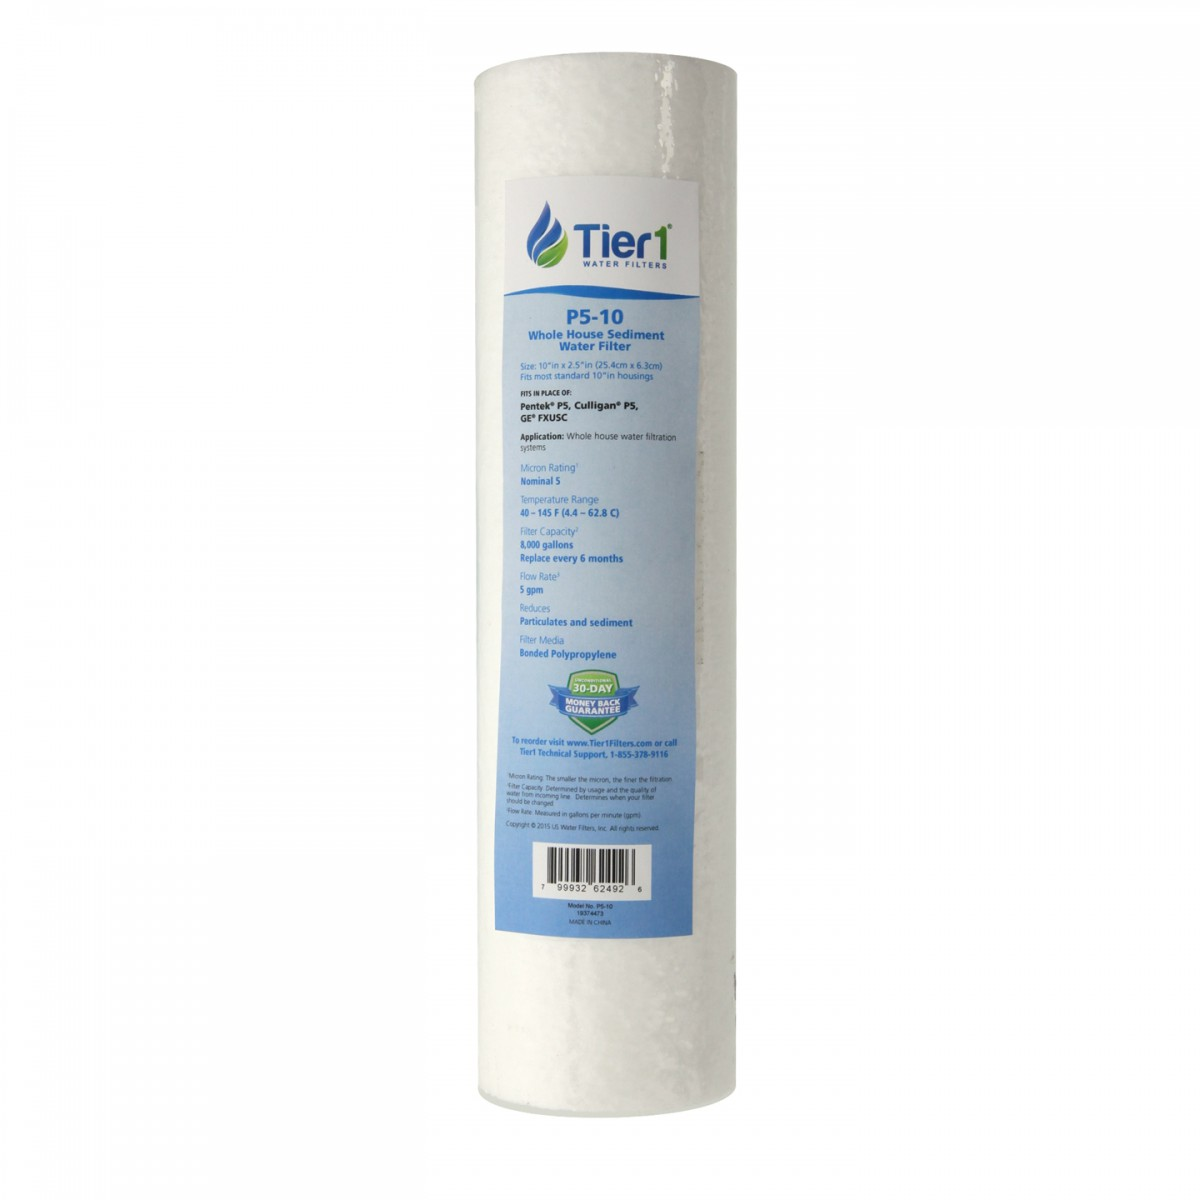 Household Water Filtration Tier1 P5 10 Sediment Water Filter